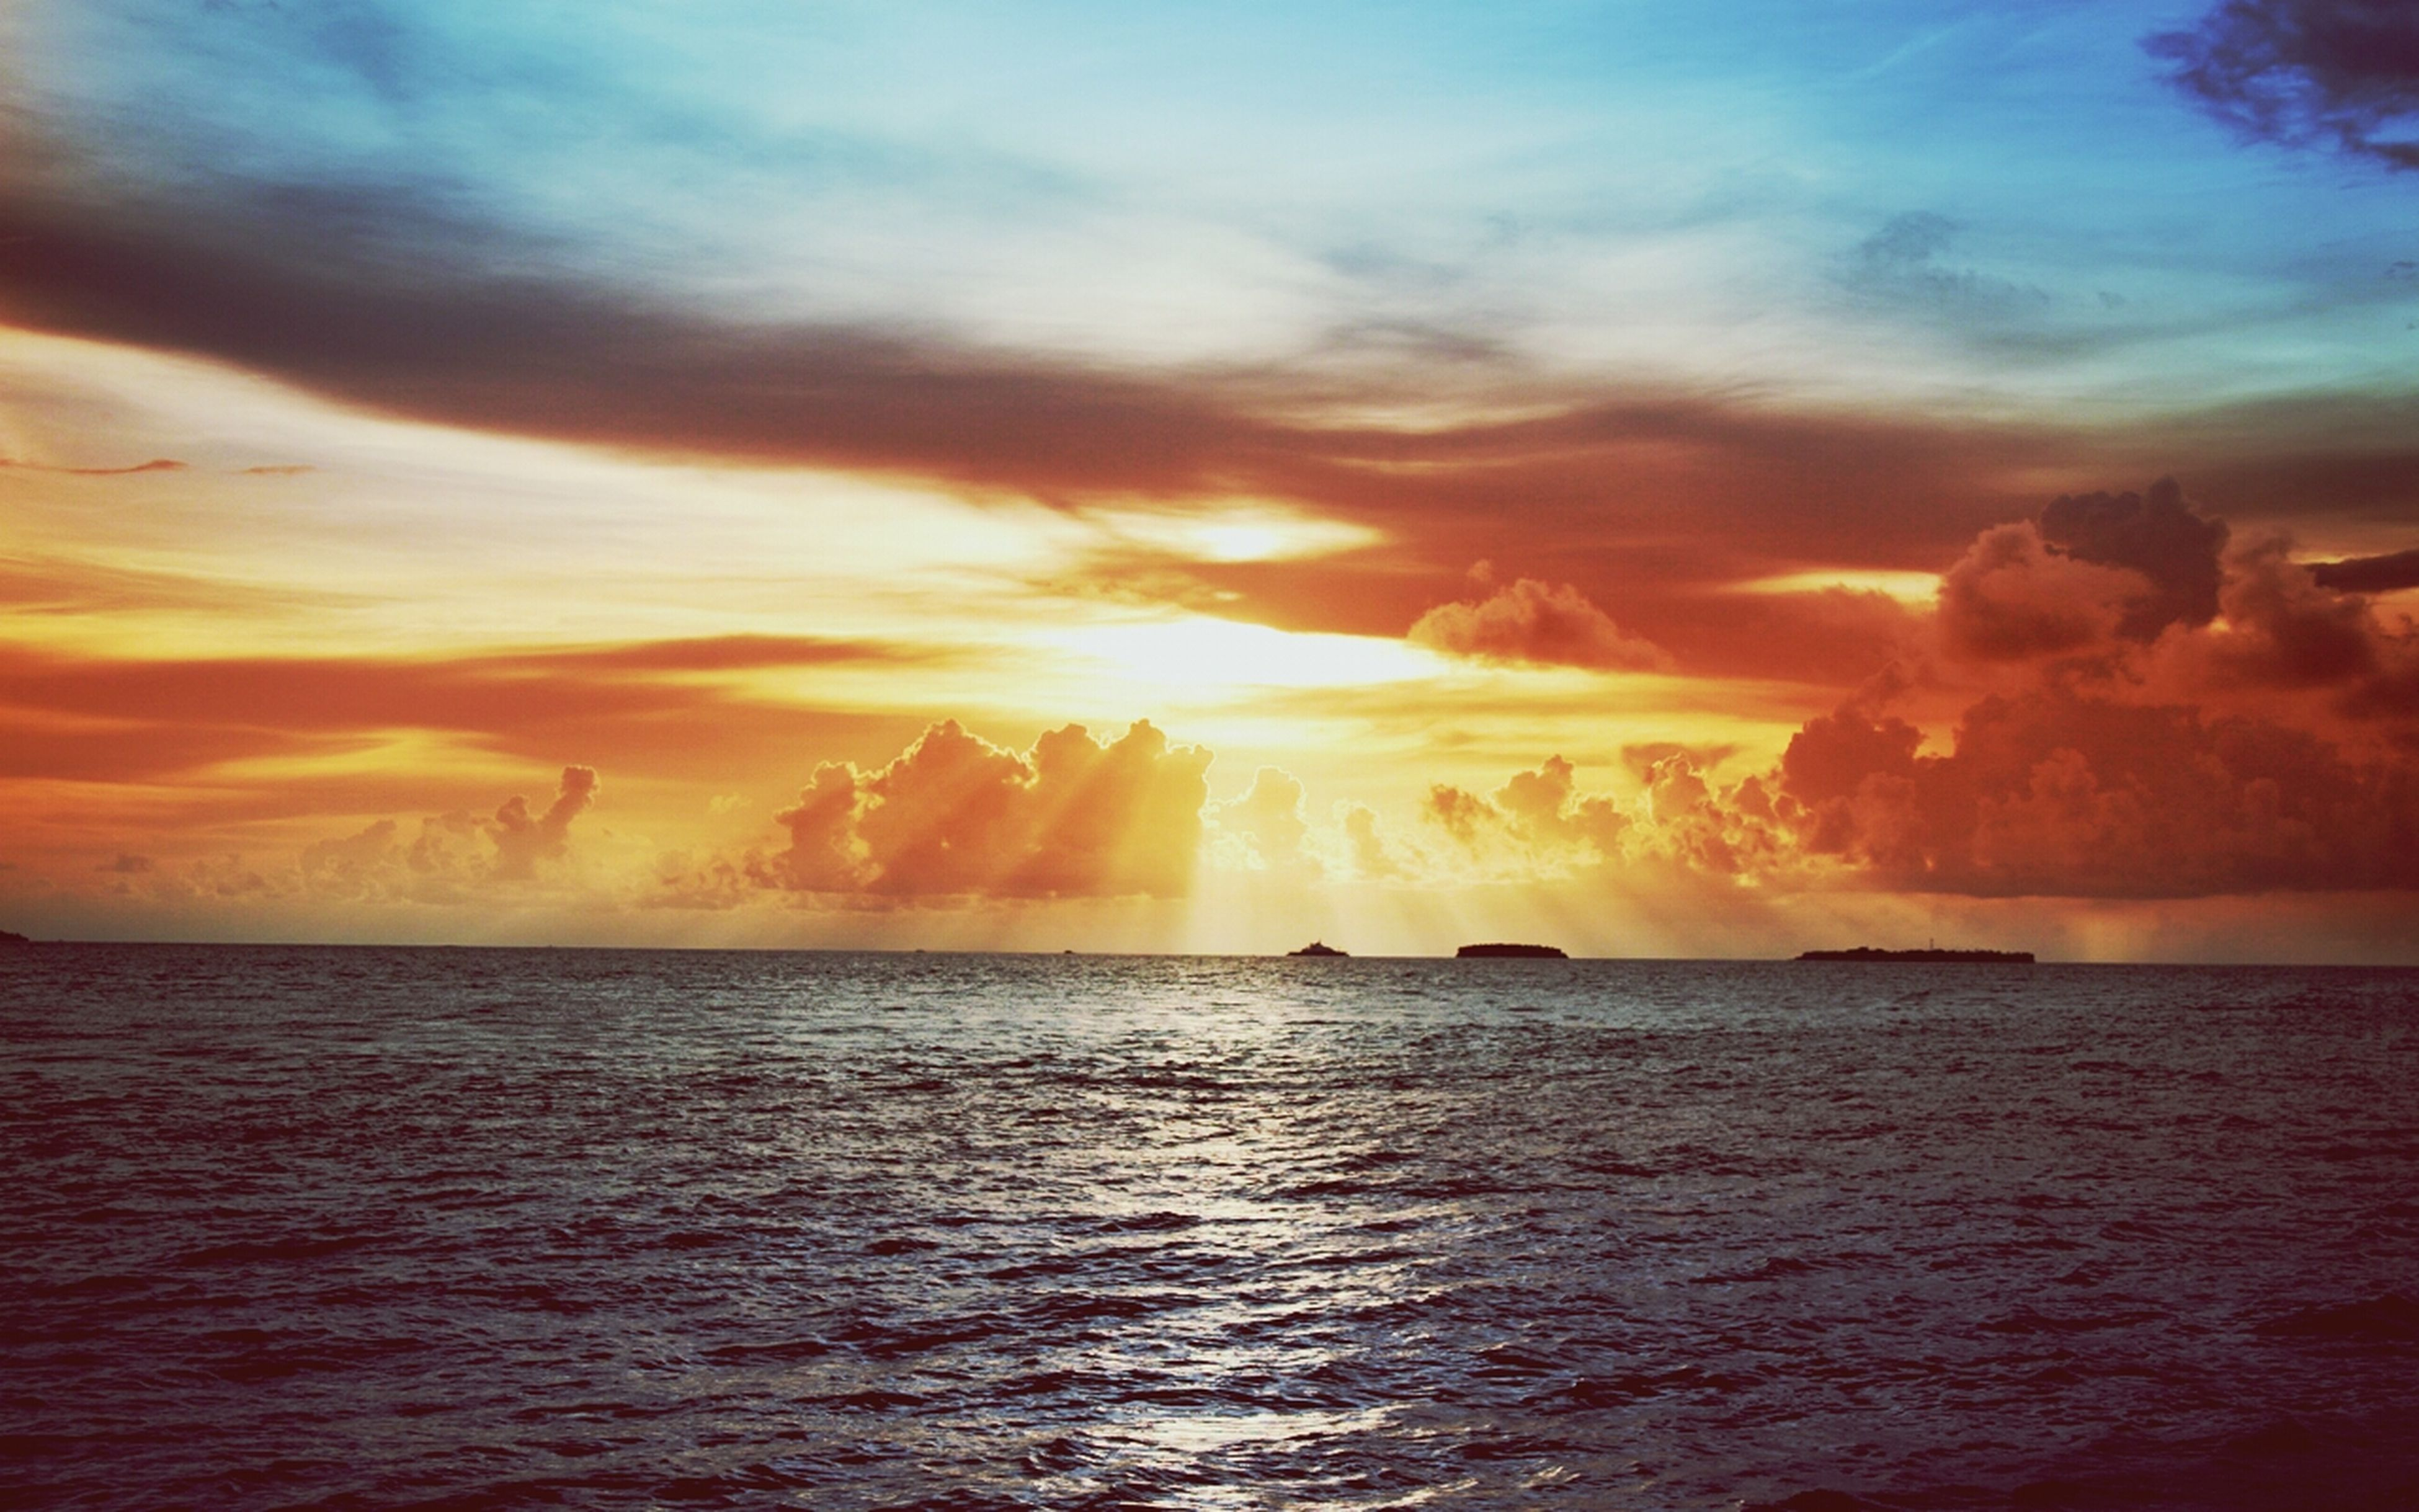 sunset, sea, water, scenics, sky, tranquil scene, beauty in nature, waterfront, horizon over water, tranquility, orange color, cloud - sky, idyllic, nature, cloud, dramatic sky, rippled, cloudy, sun, seascape